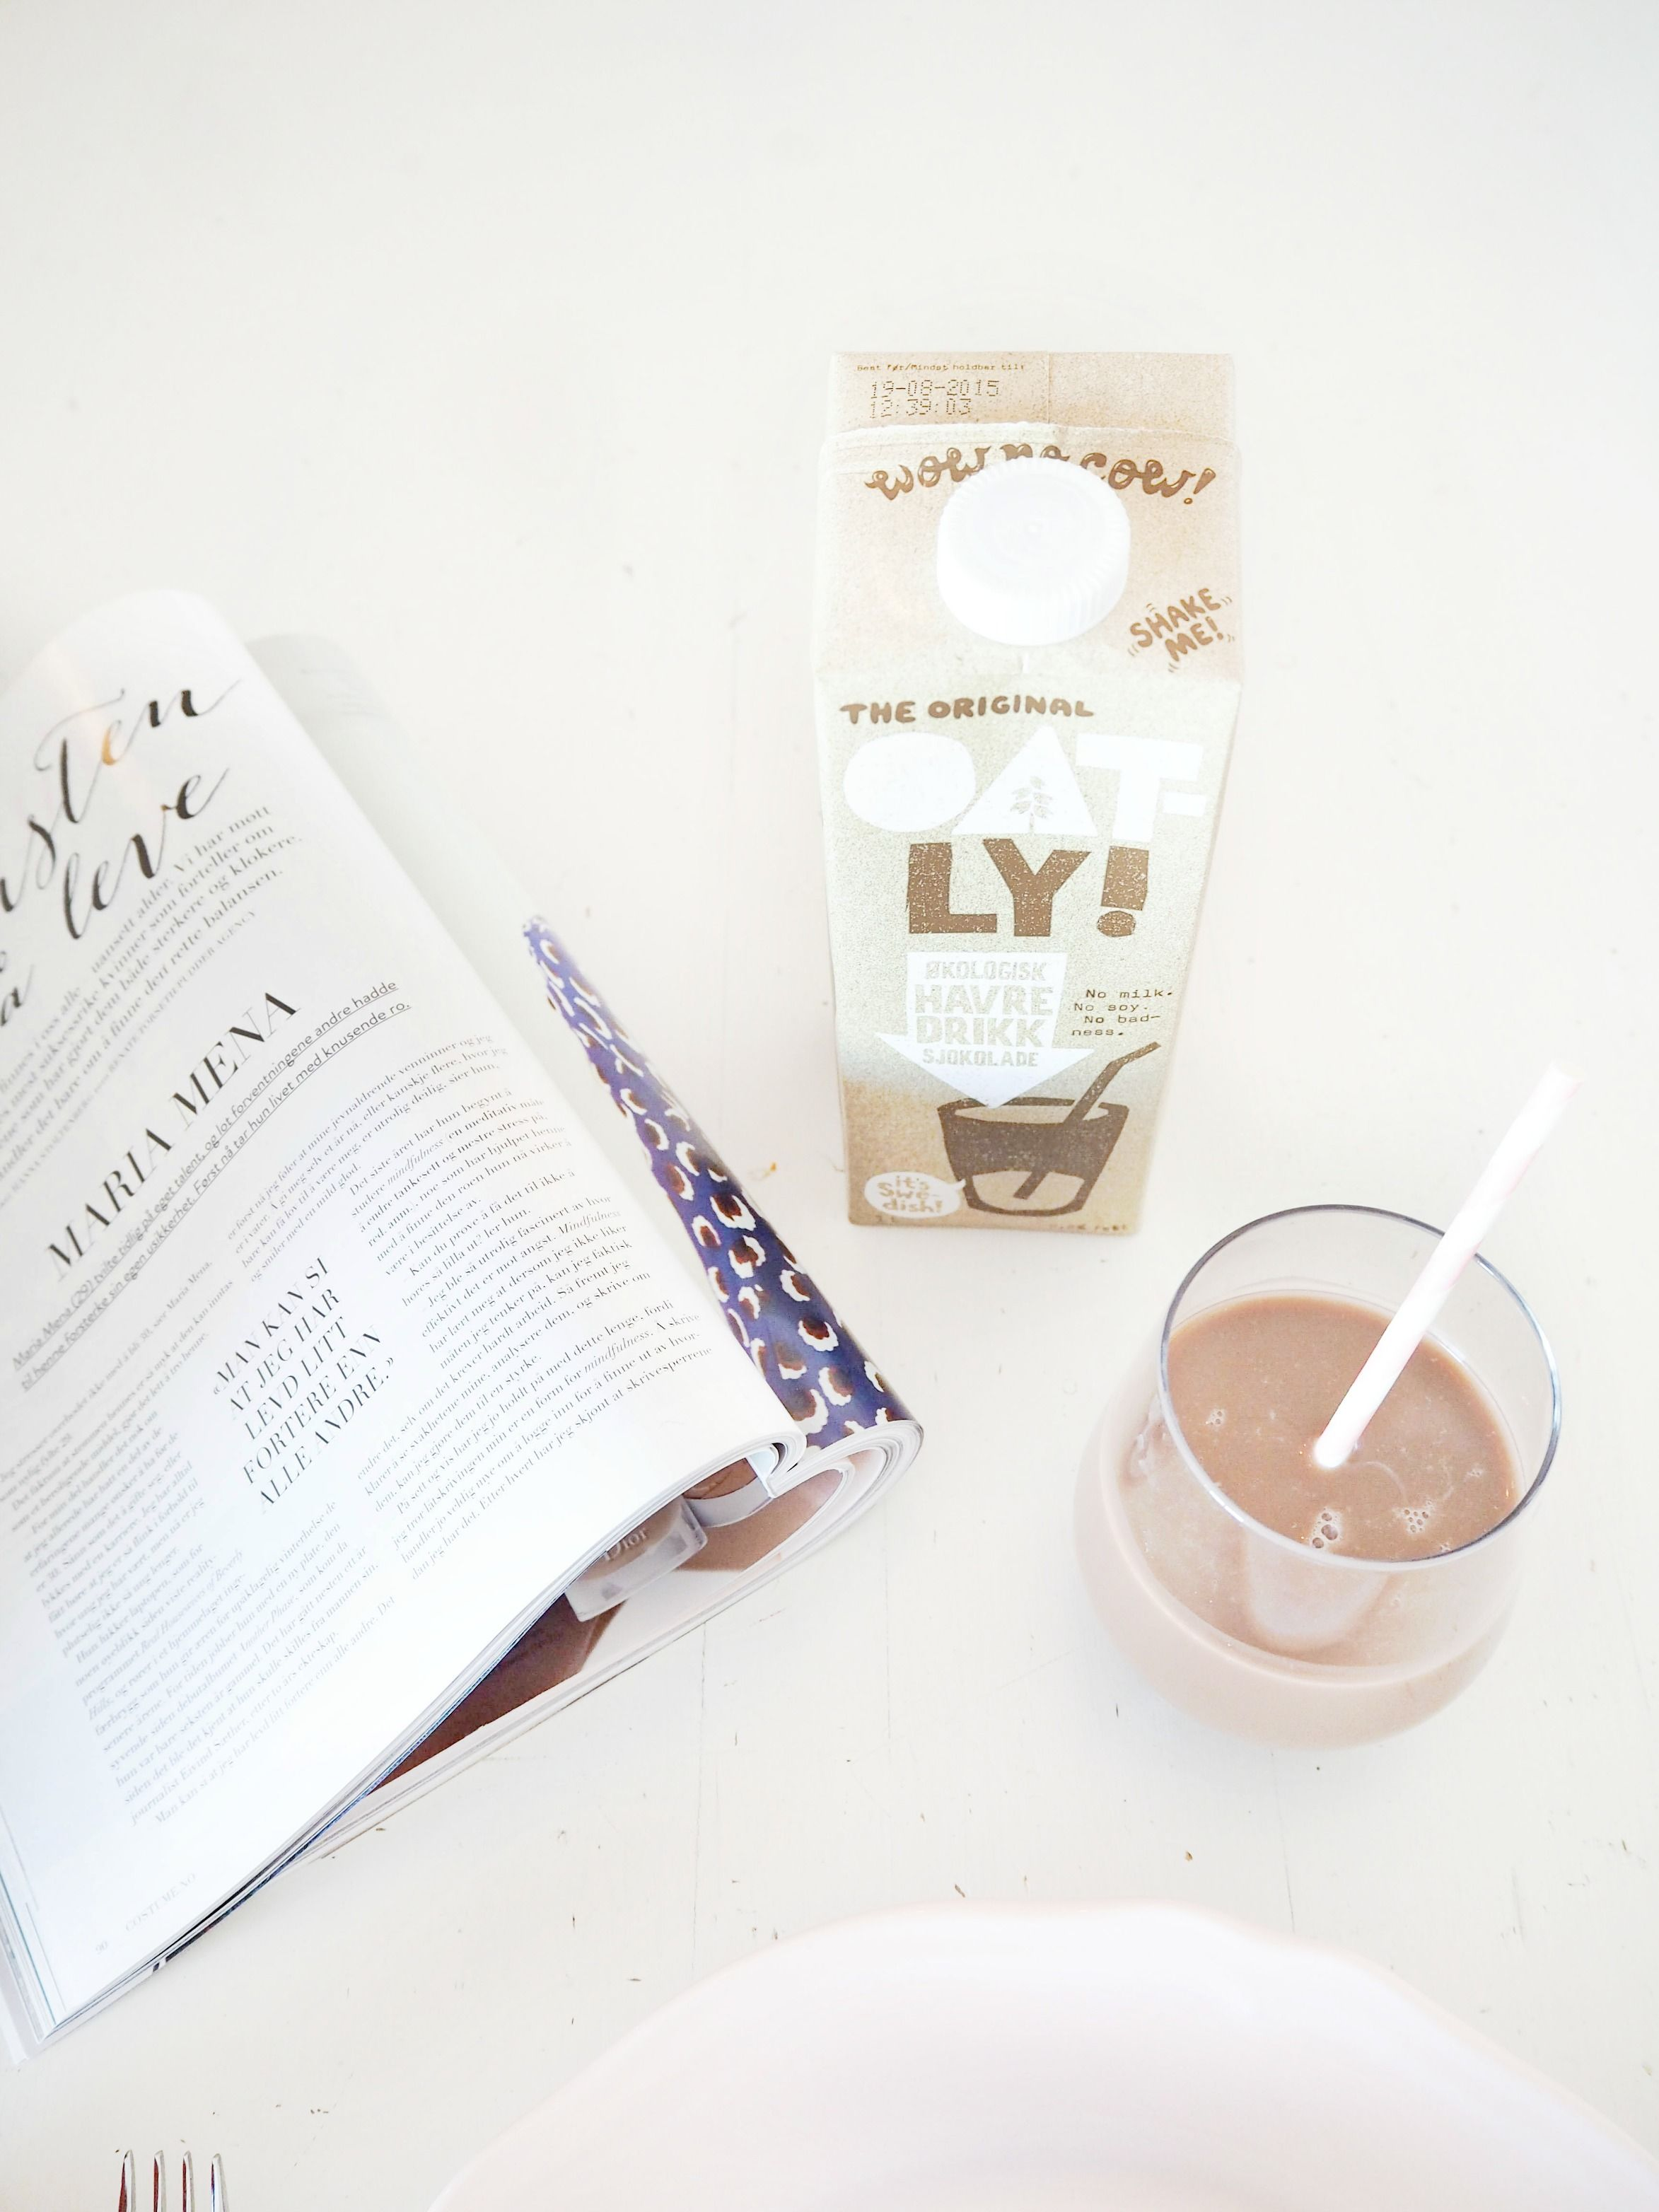 Chocolate milk in glass is also part of the weekend breakfast if you ask me. This from Oatly is not based on milk, but organic oats. It's added a few ingredients, and only sweetened with agavesirup! You can almost taste healthy public .. Me likey!